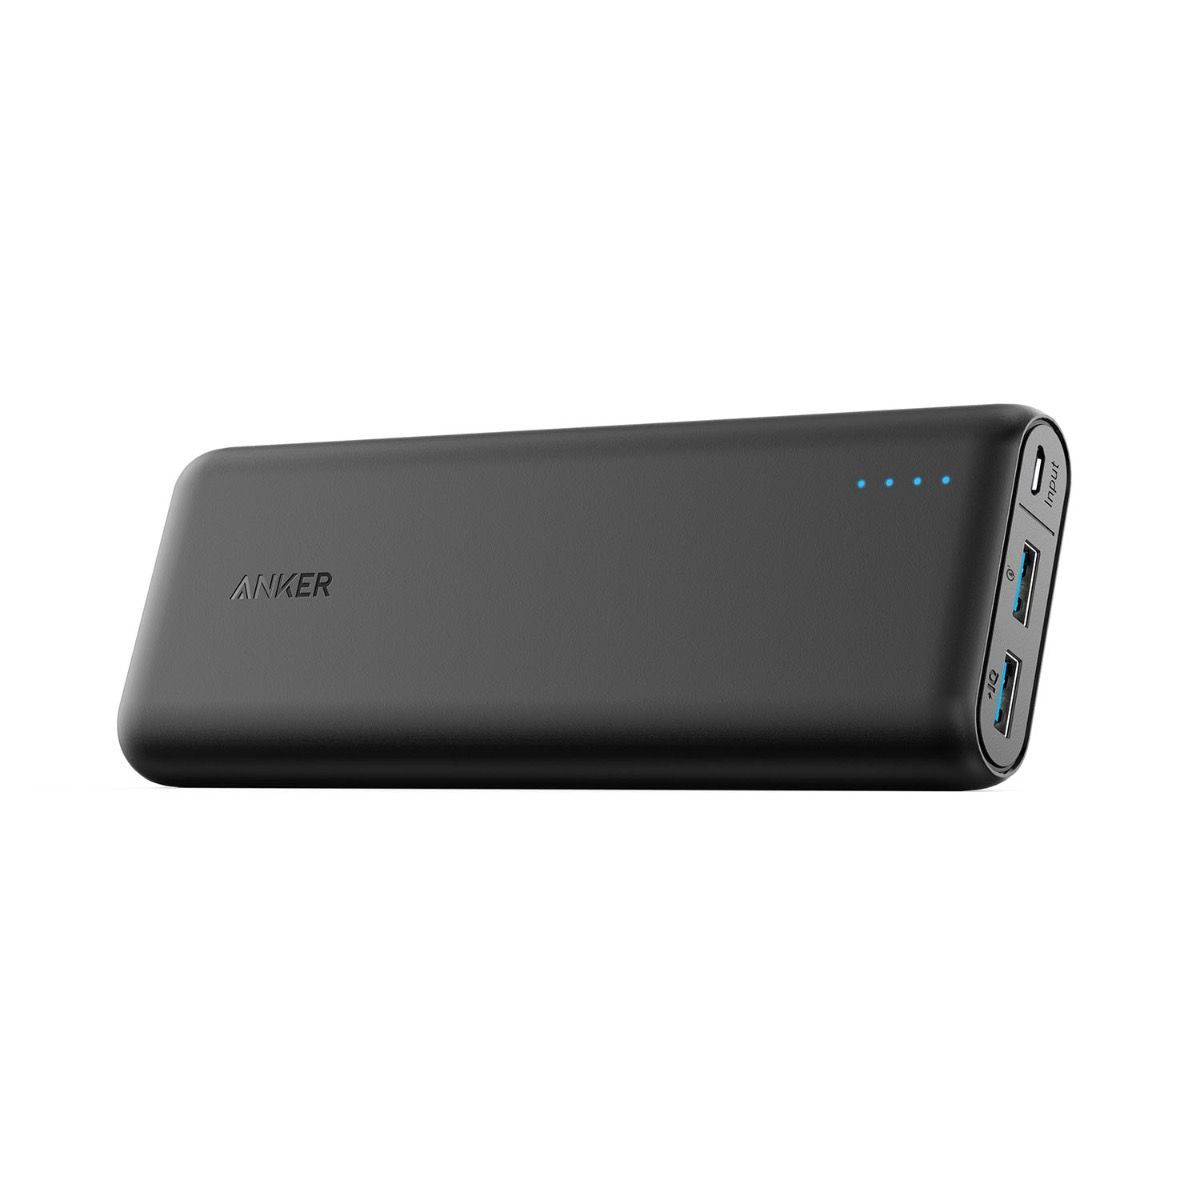 Image of Anker PowerCore Speed 20000 mAh Quick Charge 3.0 Powerbank, Sort